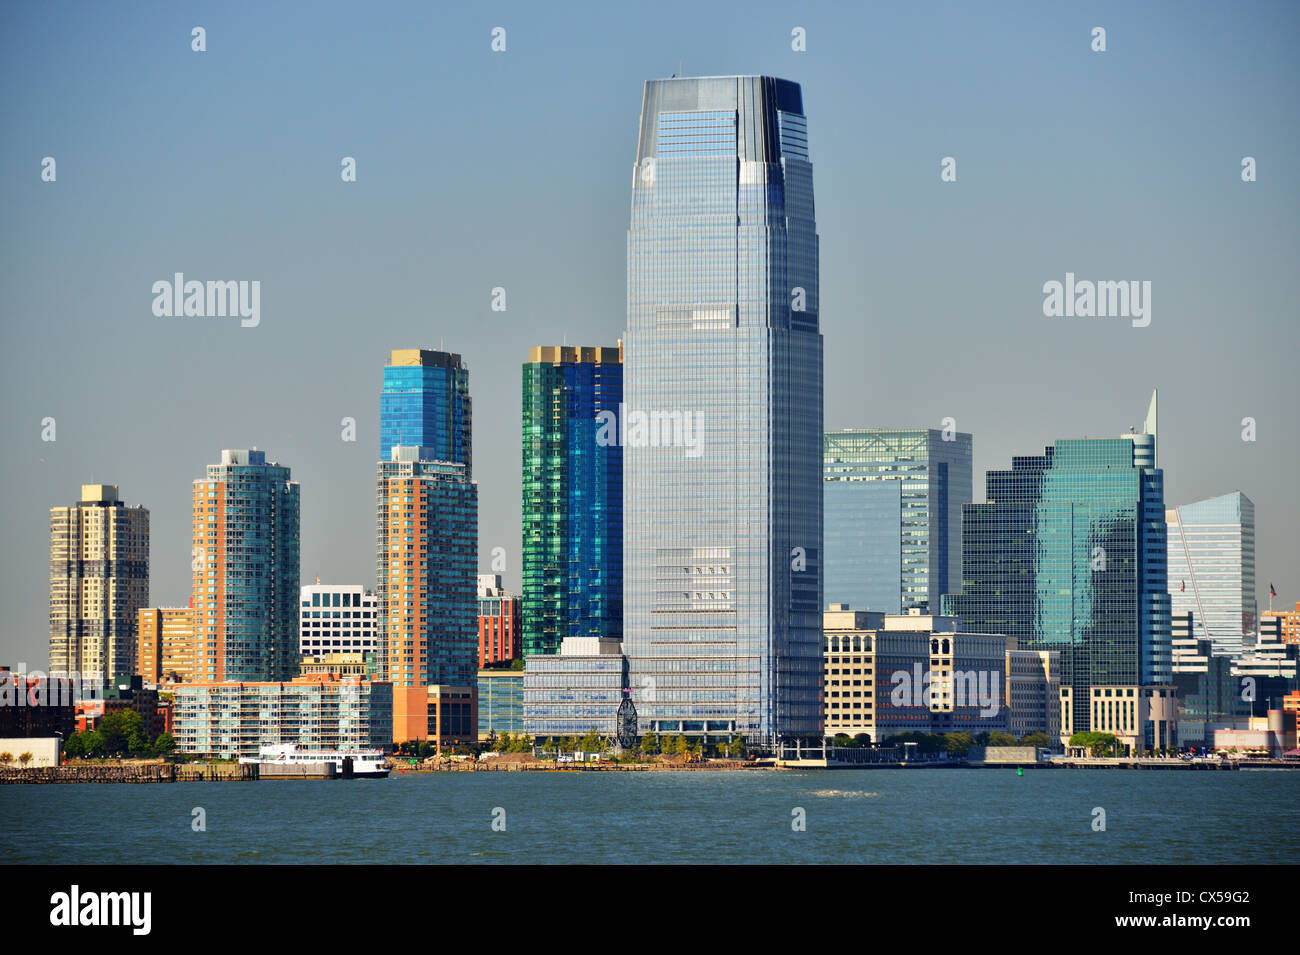 Skyline of Exchange Place at Jersey City, New Jersey, USA. - Stock Image